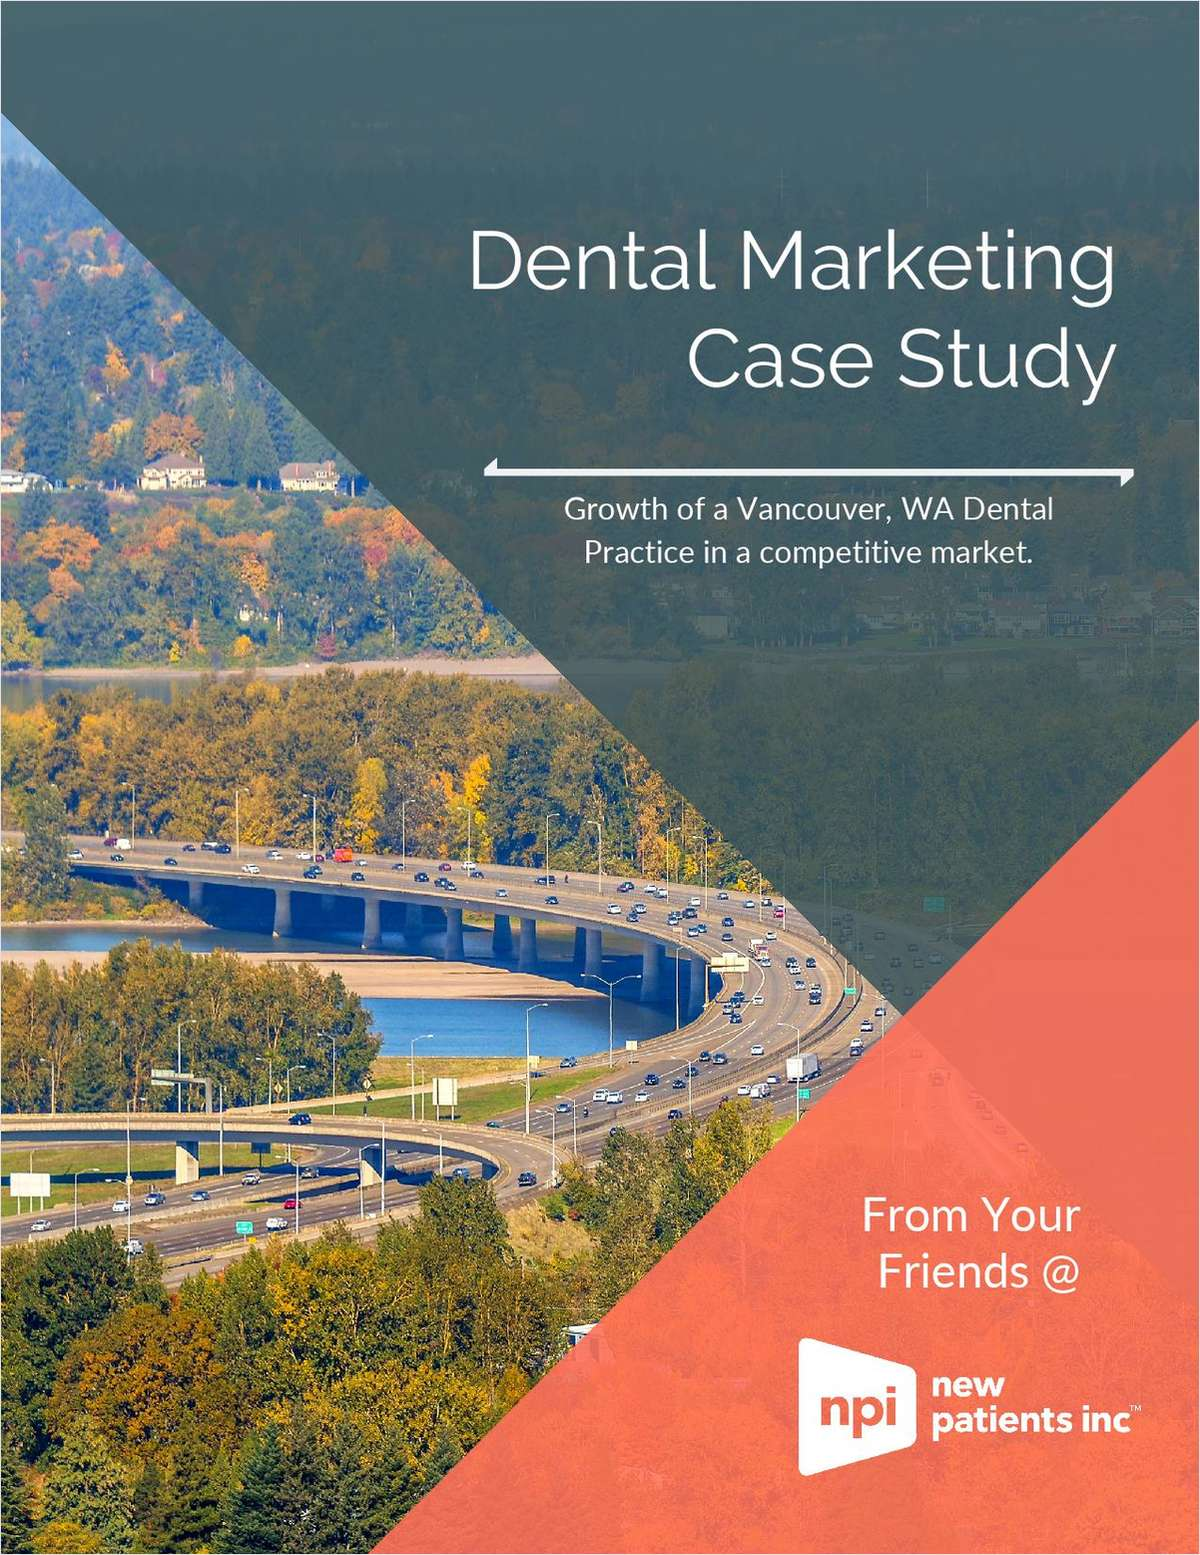 Growth of a Vancouver, WA Dental Practice in a Competitive Market